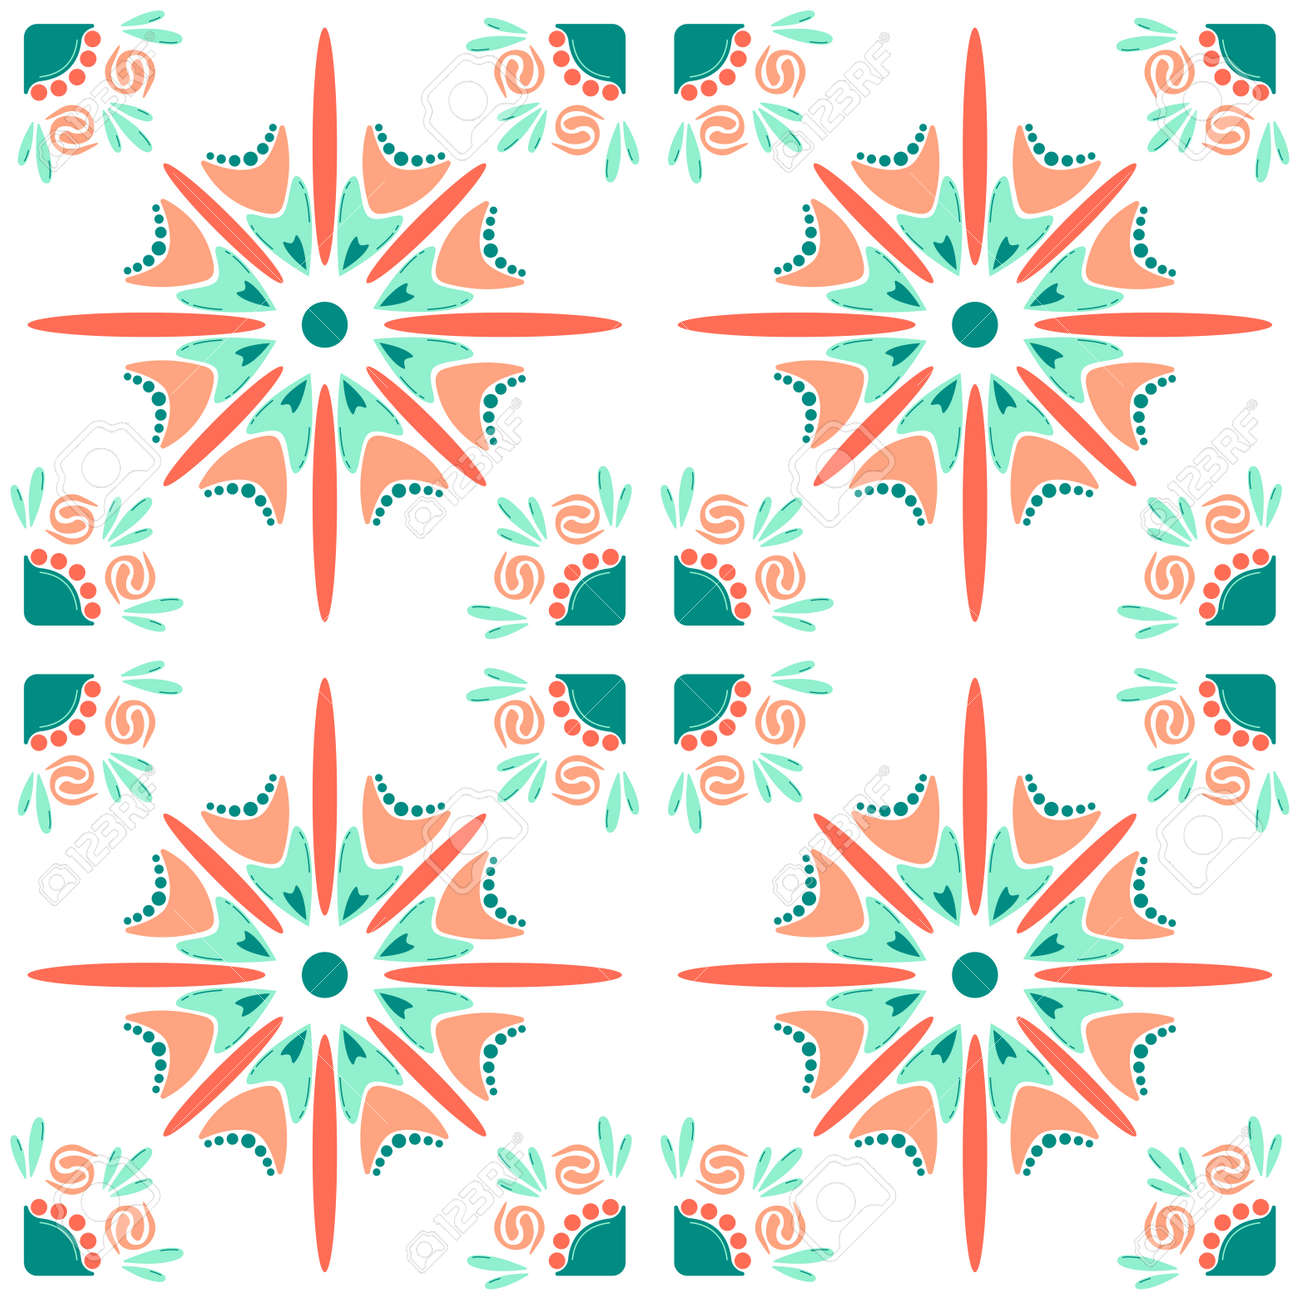 Pattern, floral abstract pattern, repeats on a grid. Suitable for use on the background, wallpaper, printed matter, wrapping paper, ceramic inflow. Vector illustration. - 173016044